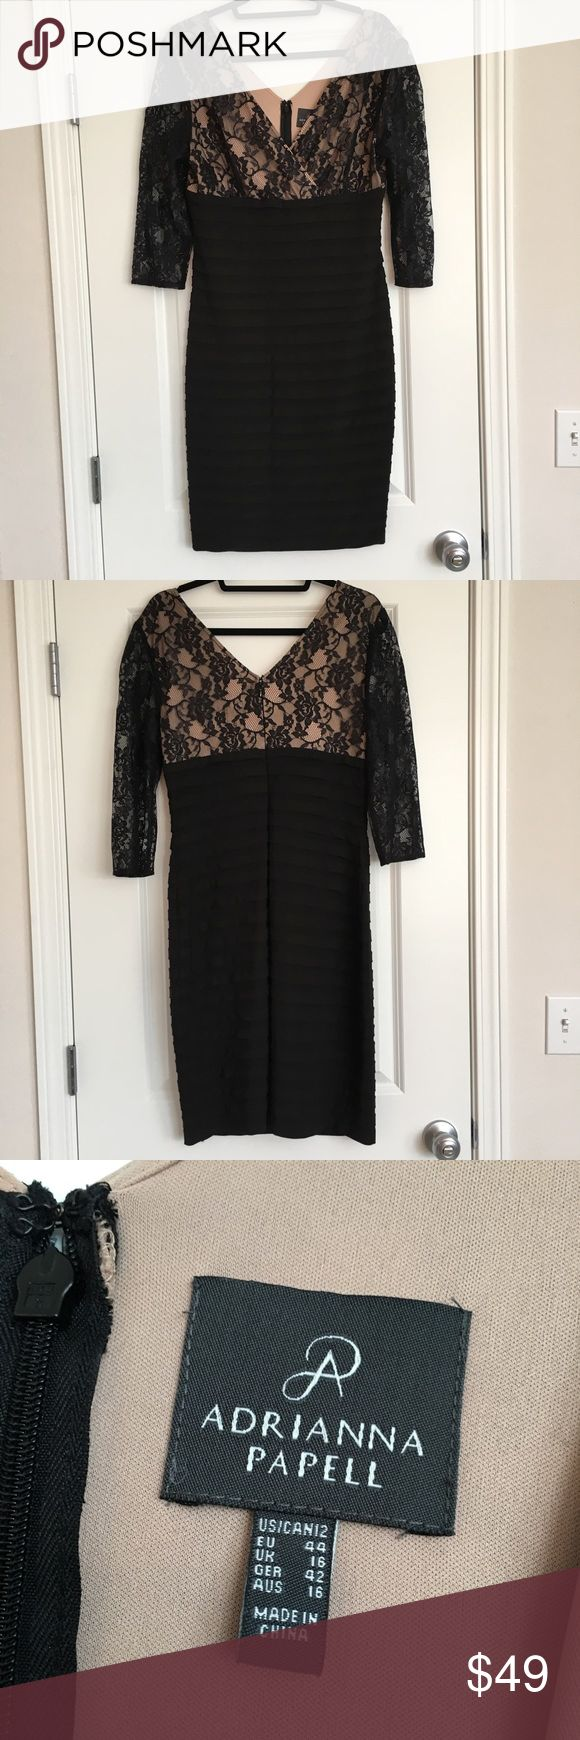 Adrianna Papell Special Occasion Dress Nude top with lace overlay and black tiered bottom with slight gold shimmer. Nice stretchy material for comfort. Such a gorgeous dress. Adrianna Papell Dresses